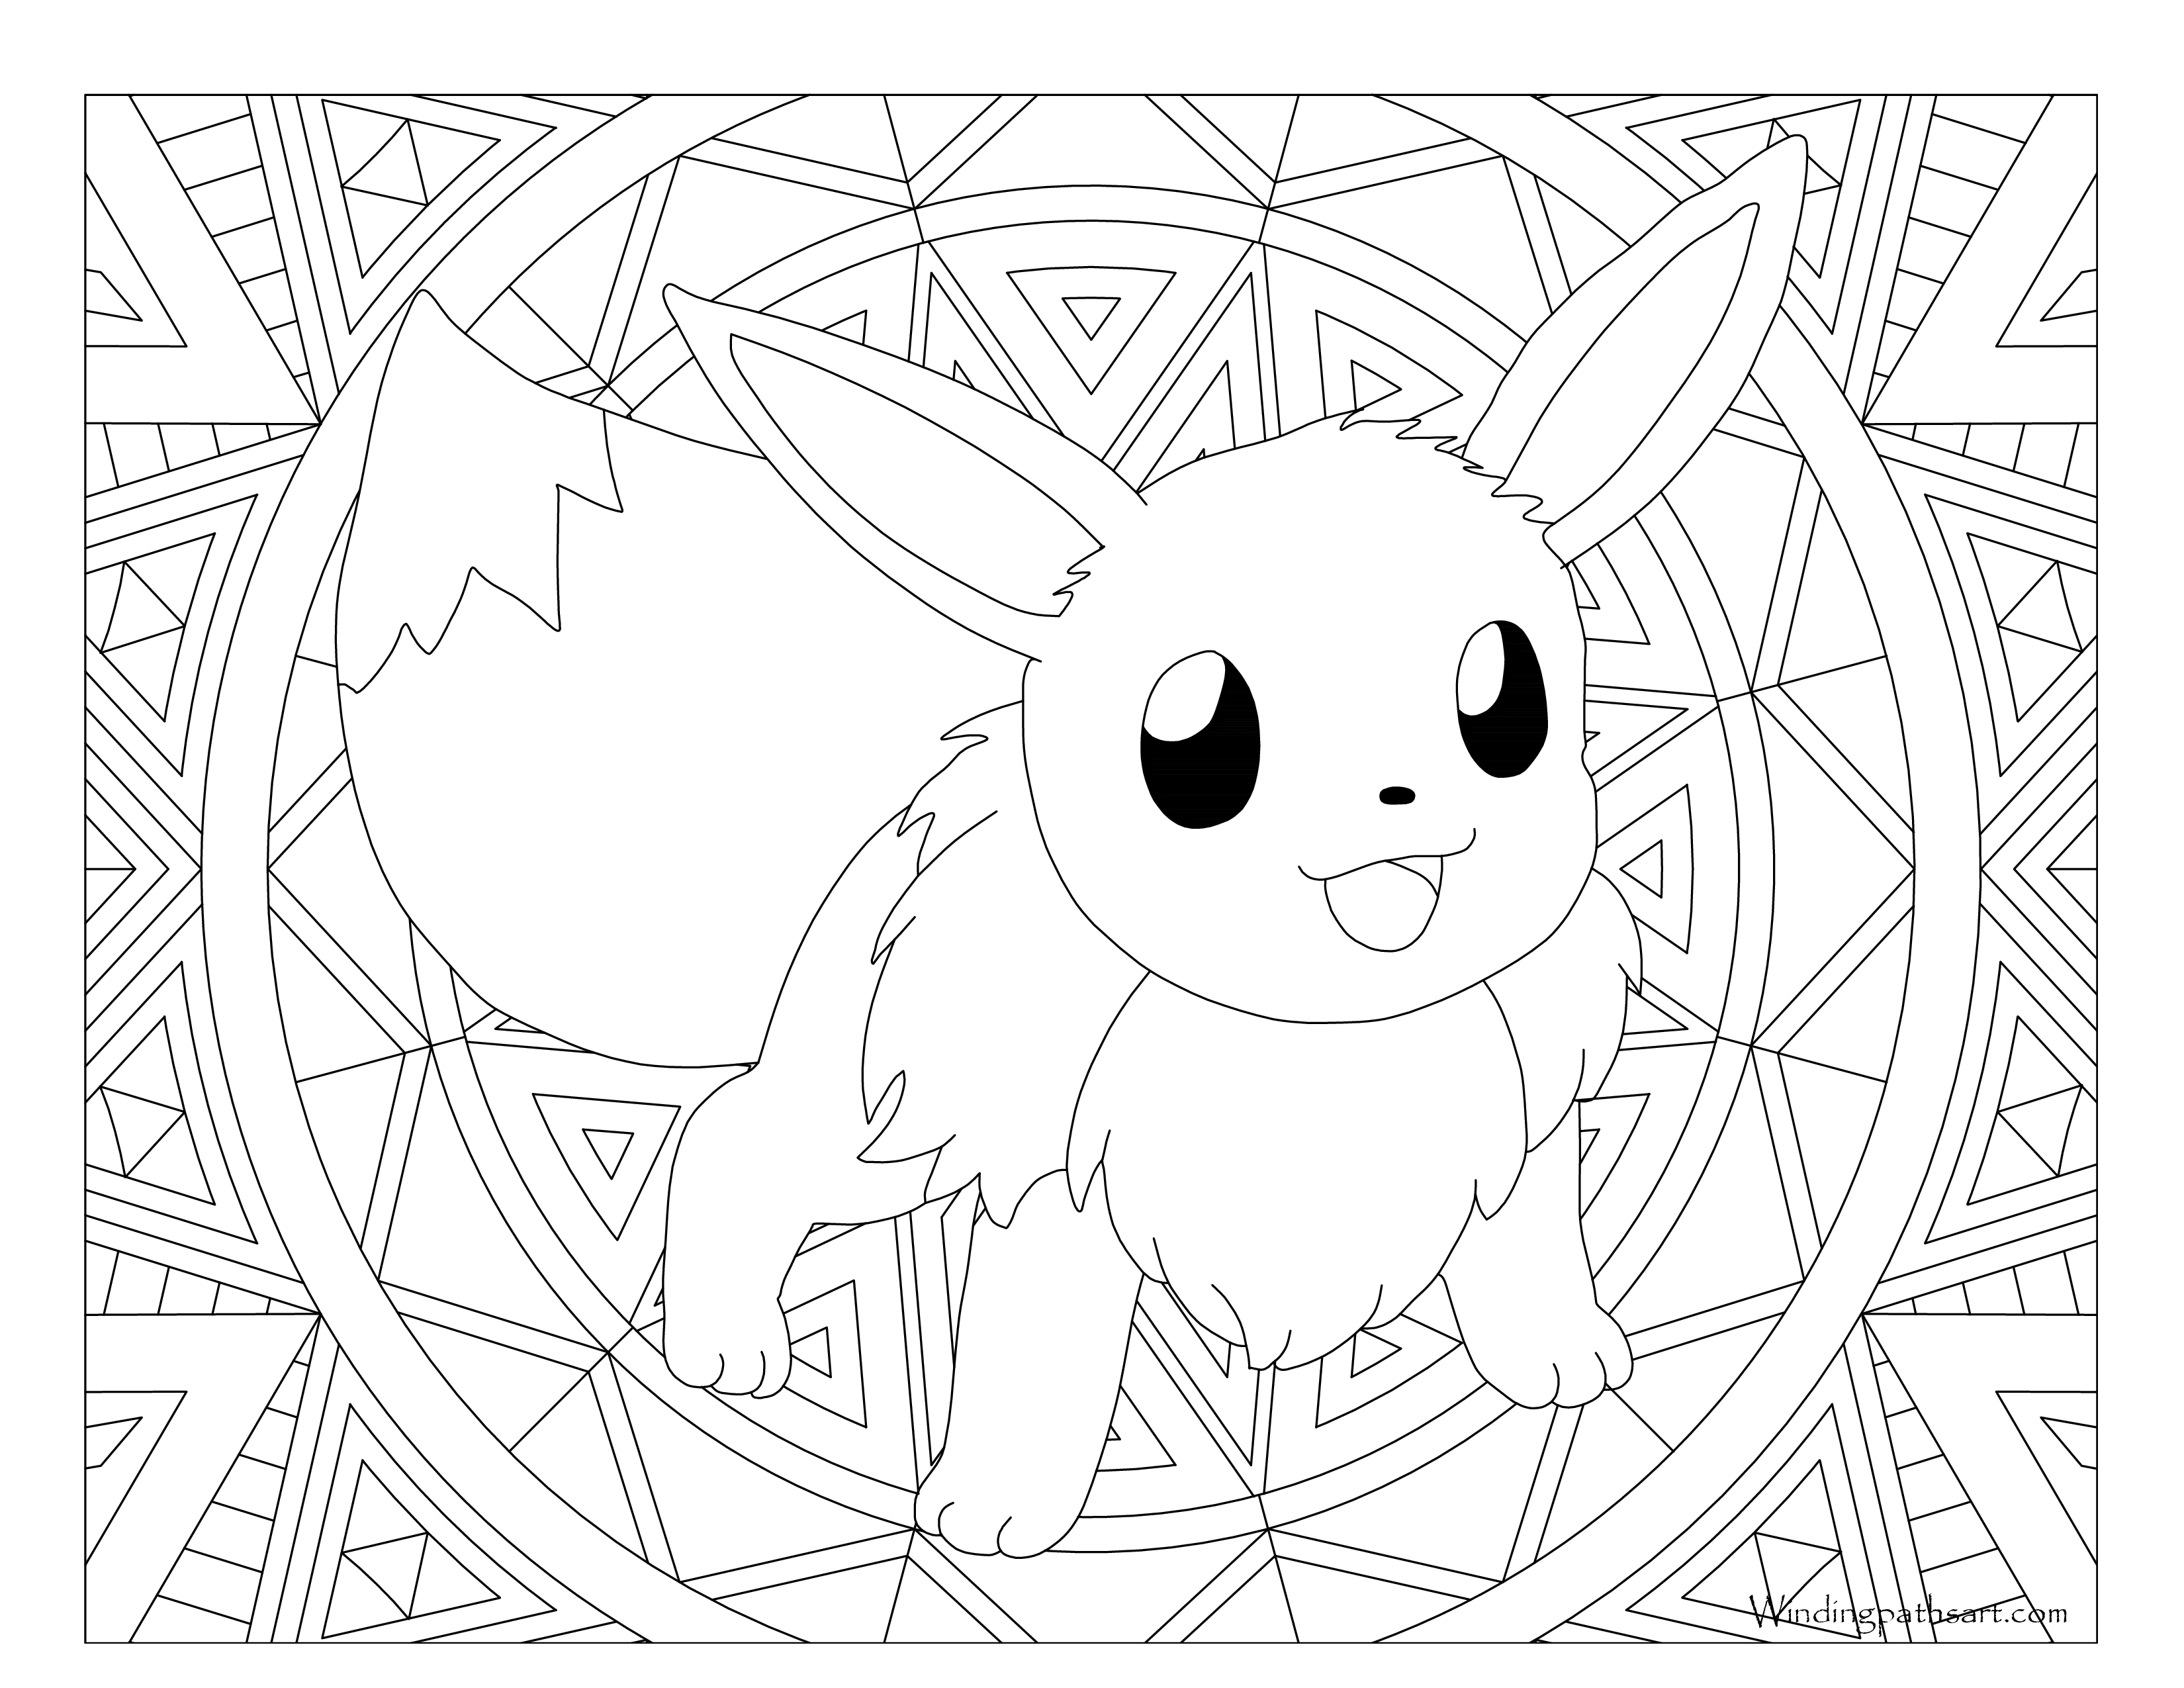 Eevee And Pikachu Coloring Pages at GetDrawings | Free ...